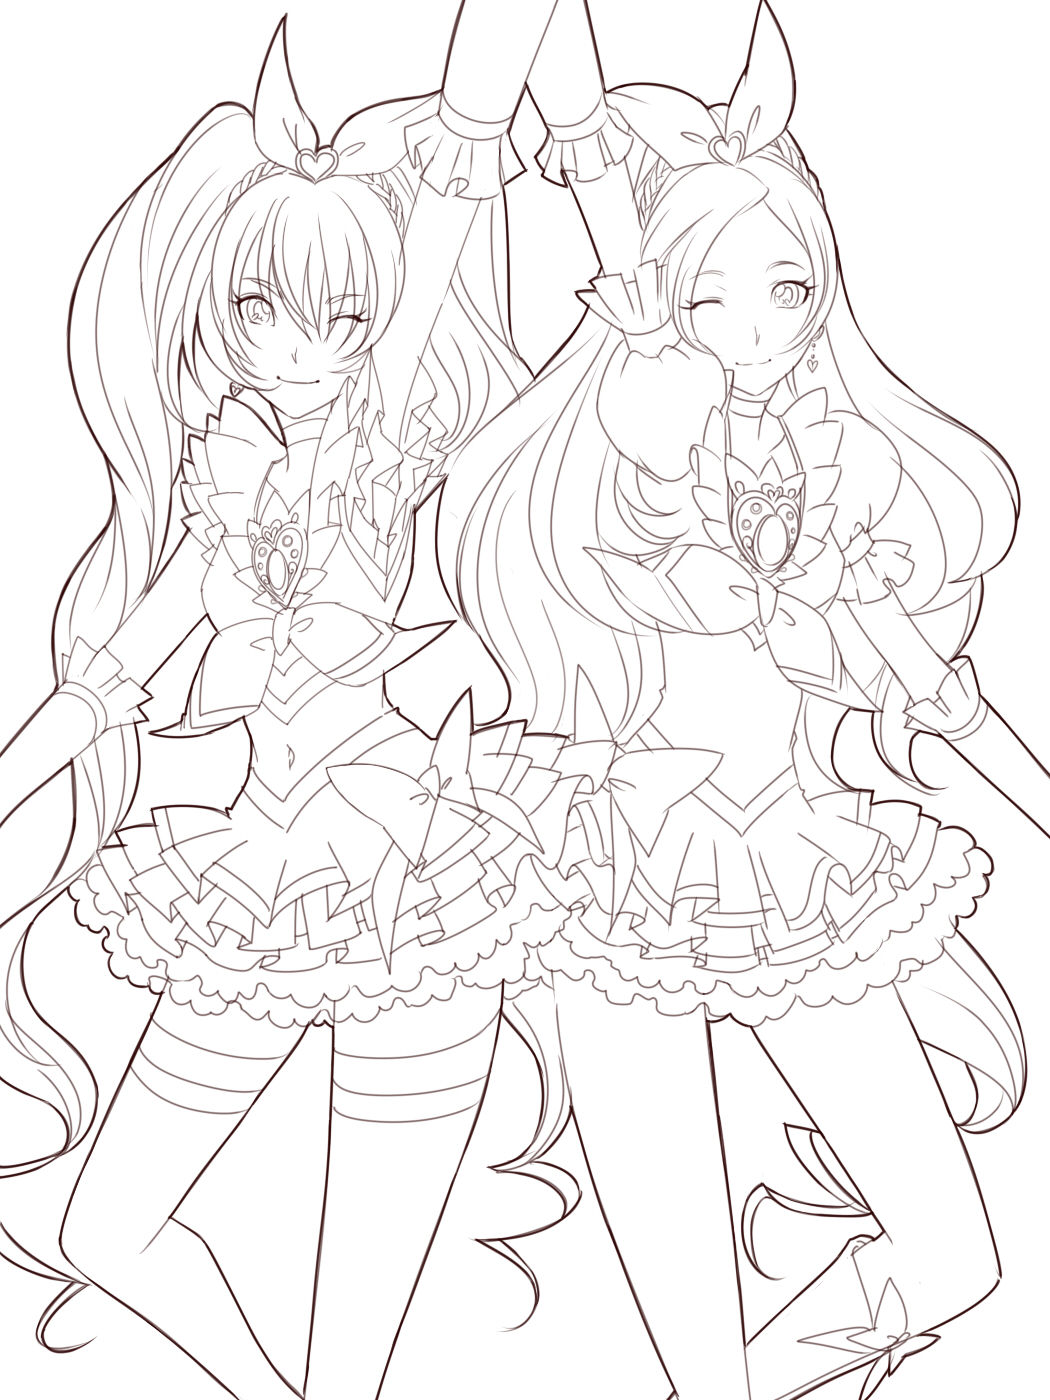 1050x1400 Anime Coloring Pages Free Coloring Pages For Kids